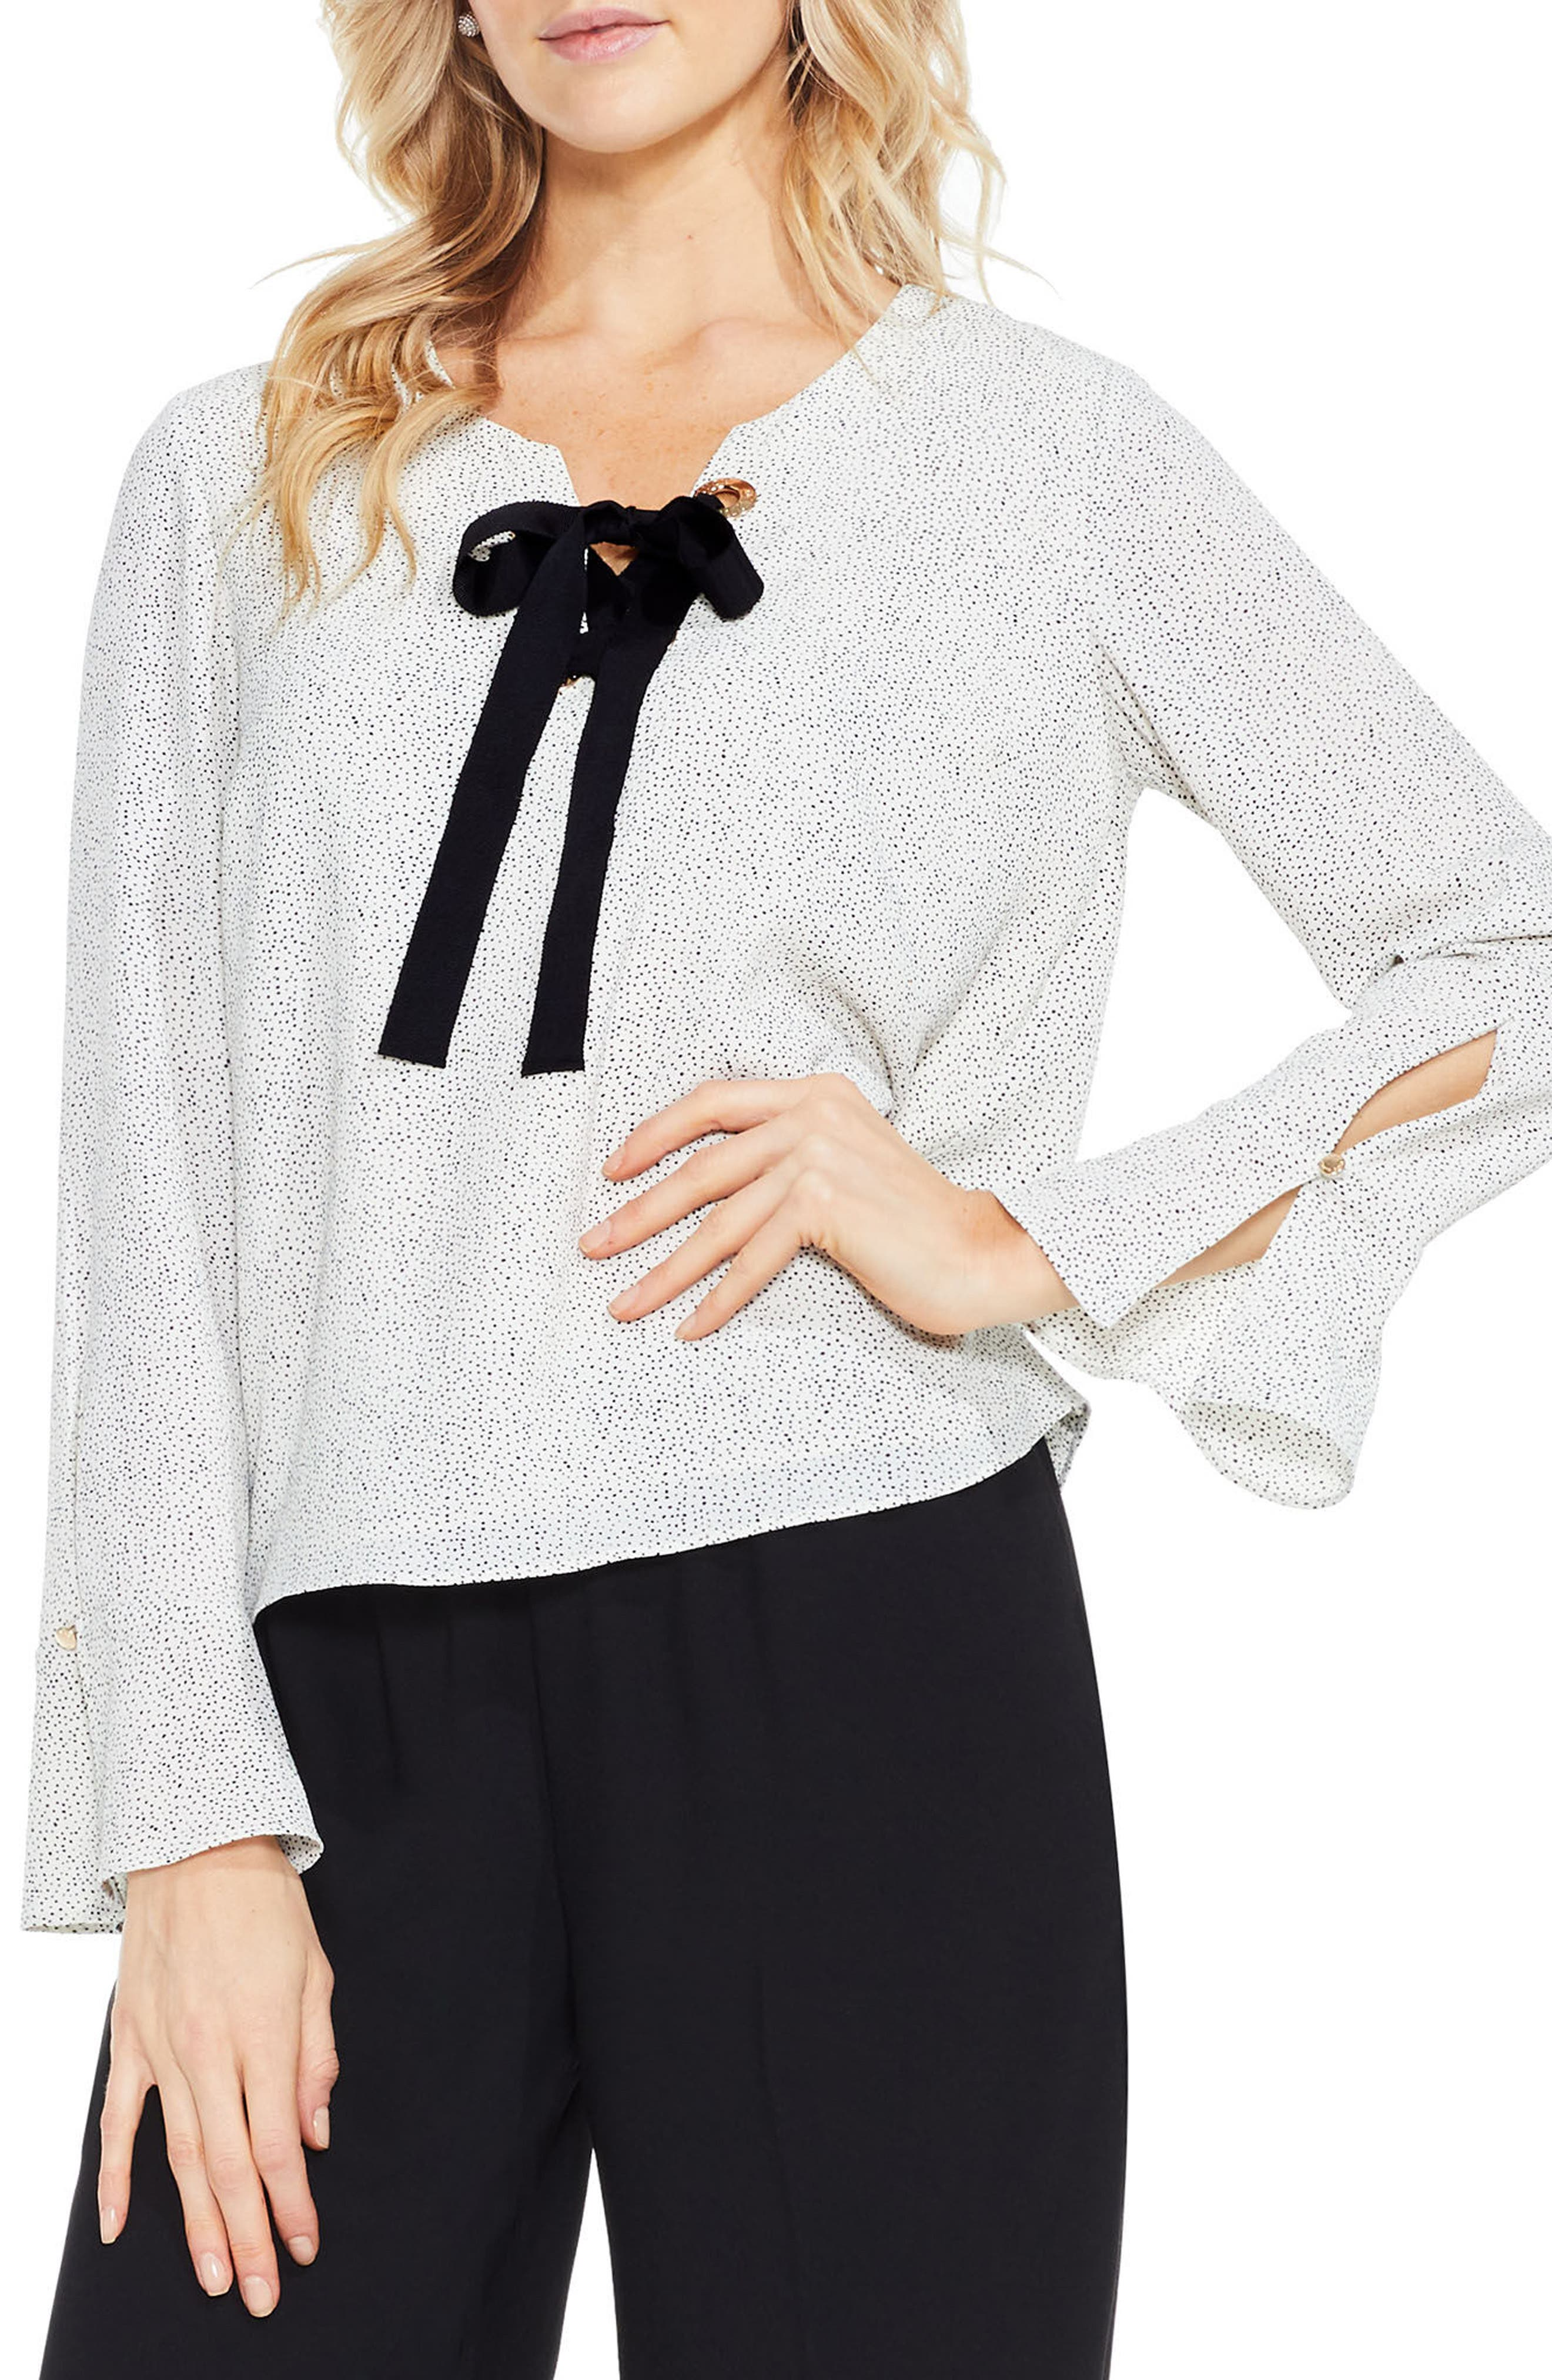 Main Image - Vince Camuto Elegant Speckles Bell Sleeve Blouse